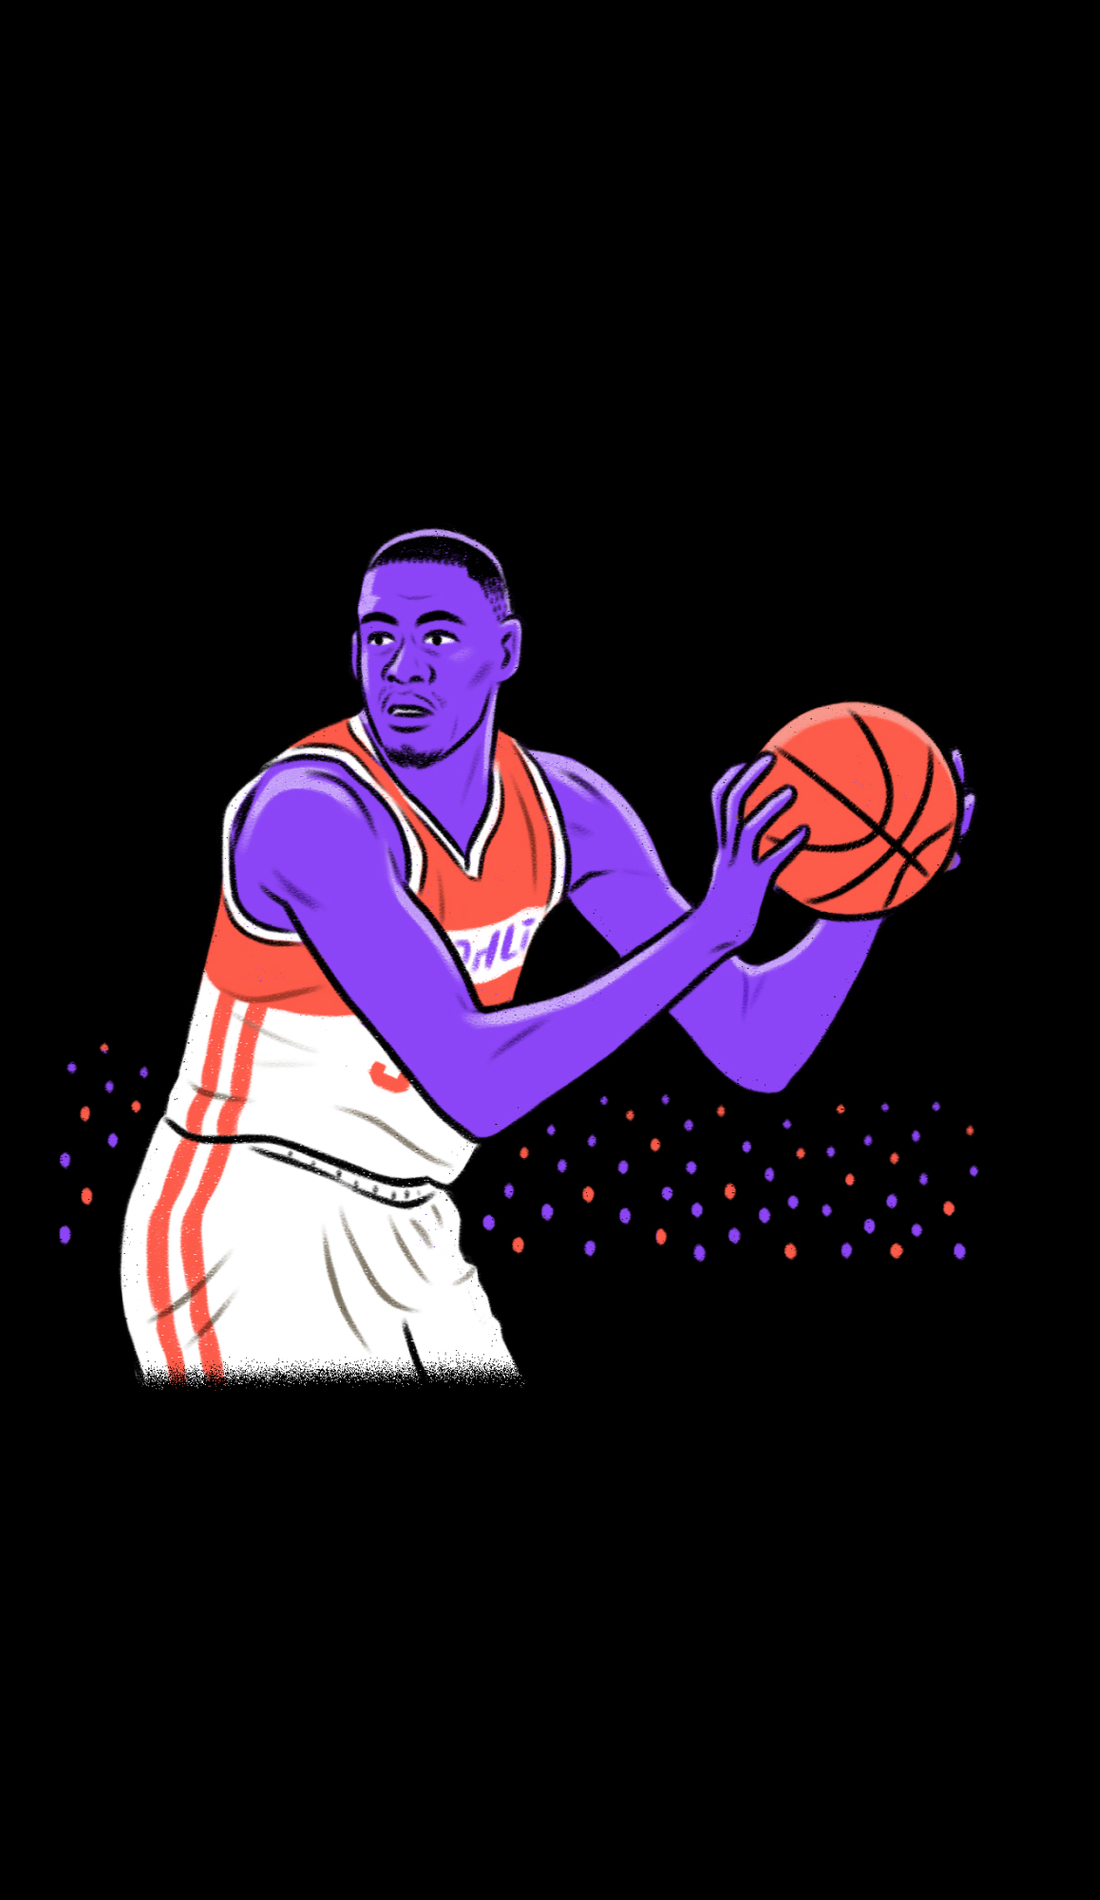 A New Mexico State Aggies Basketball live event